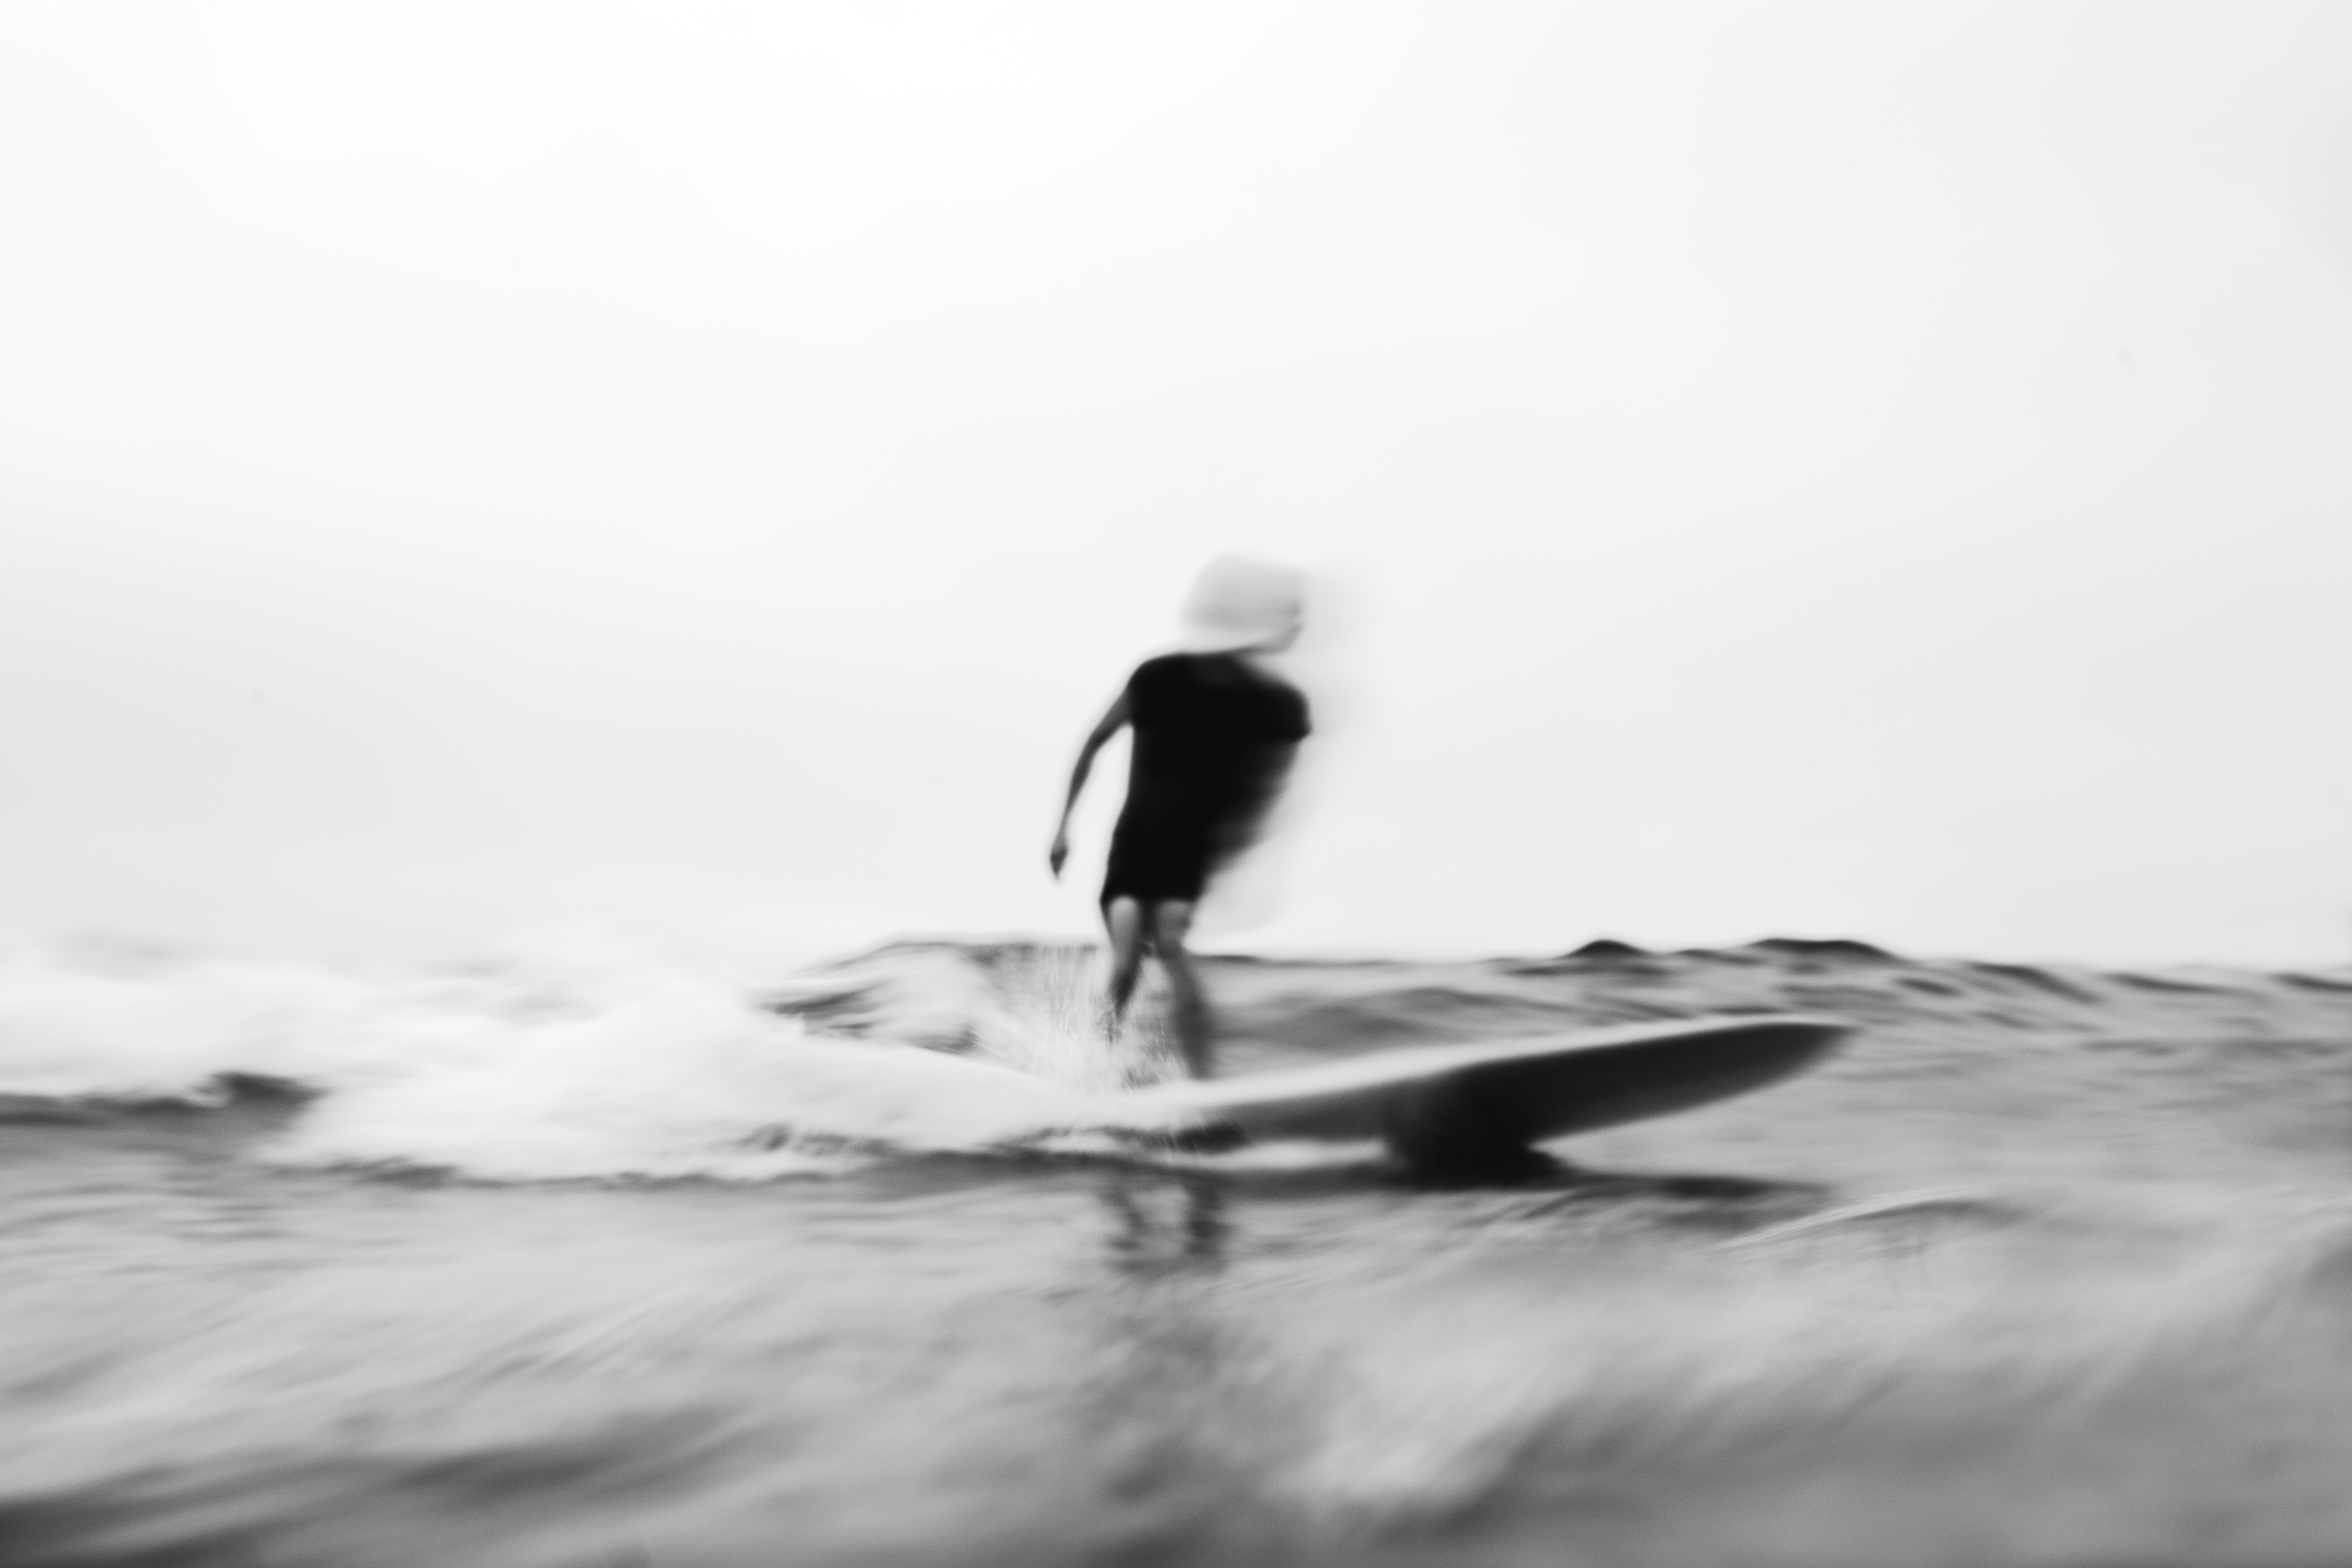 person surfing grayscale photo